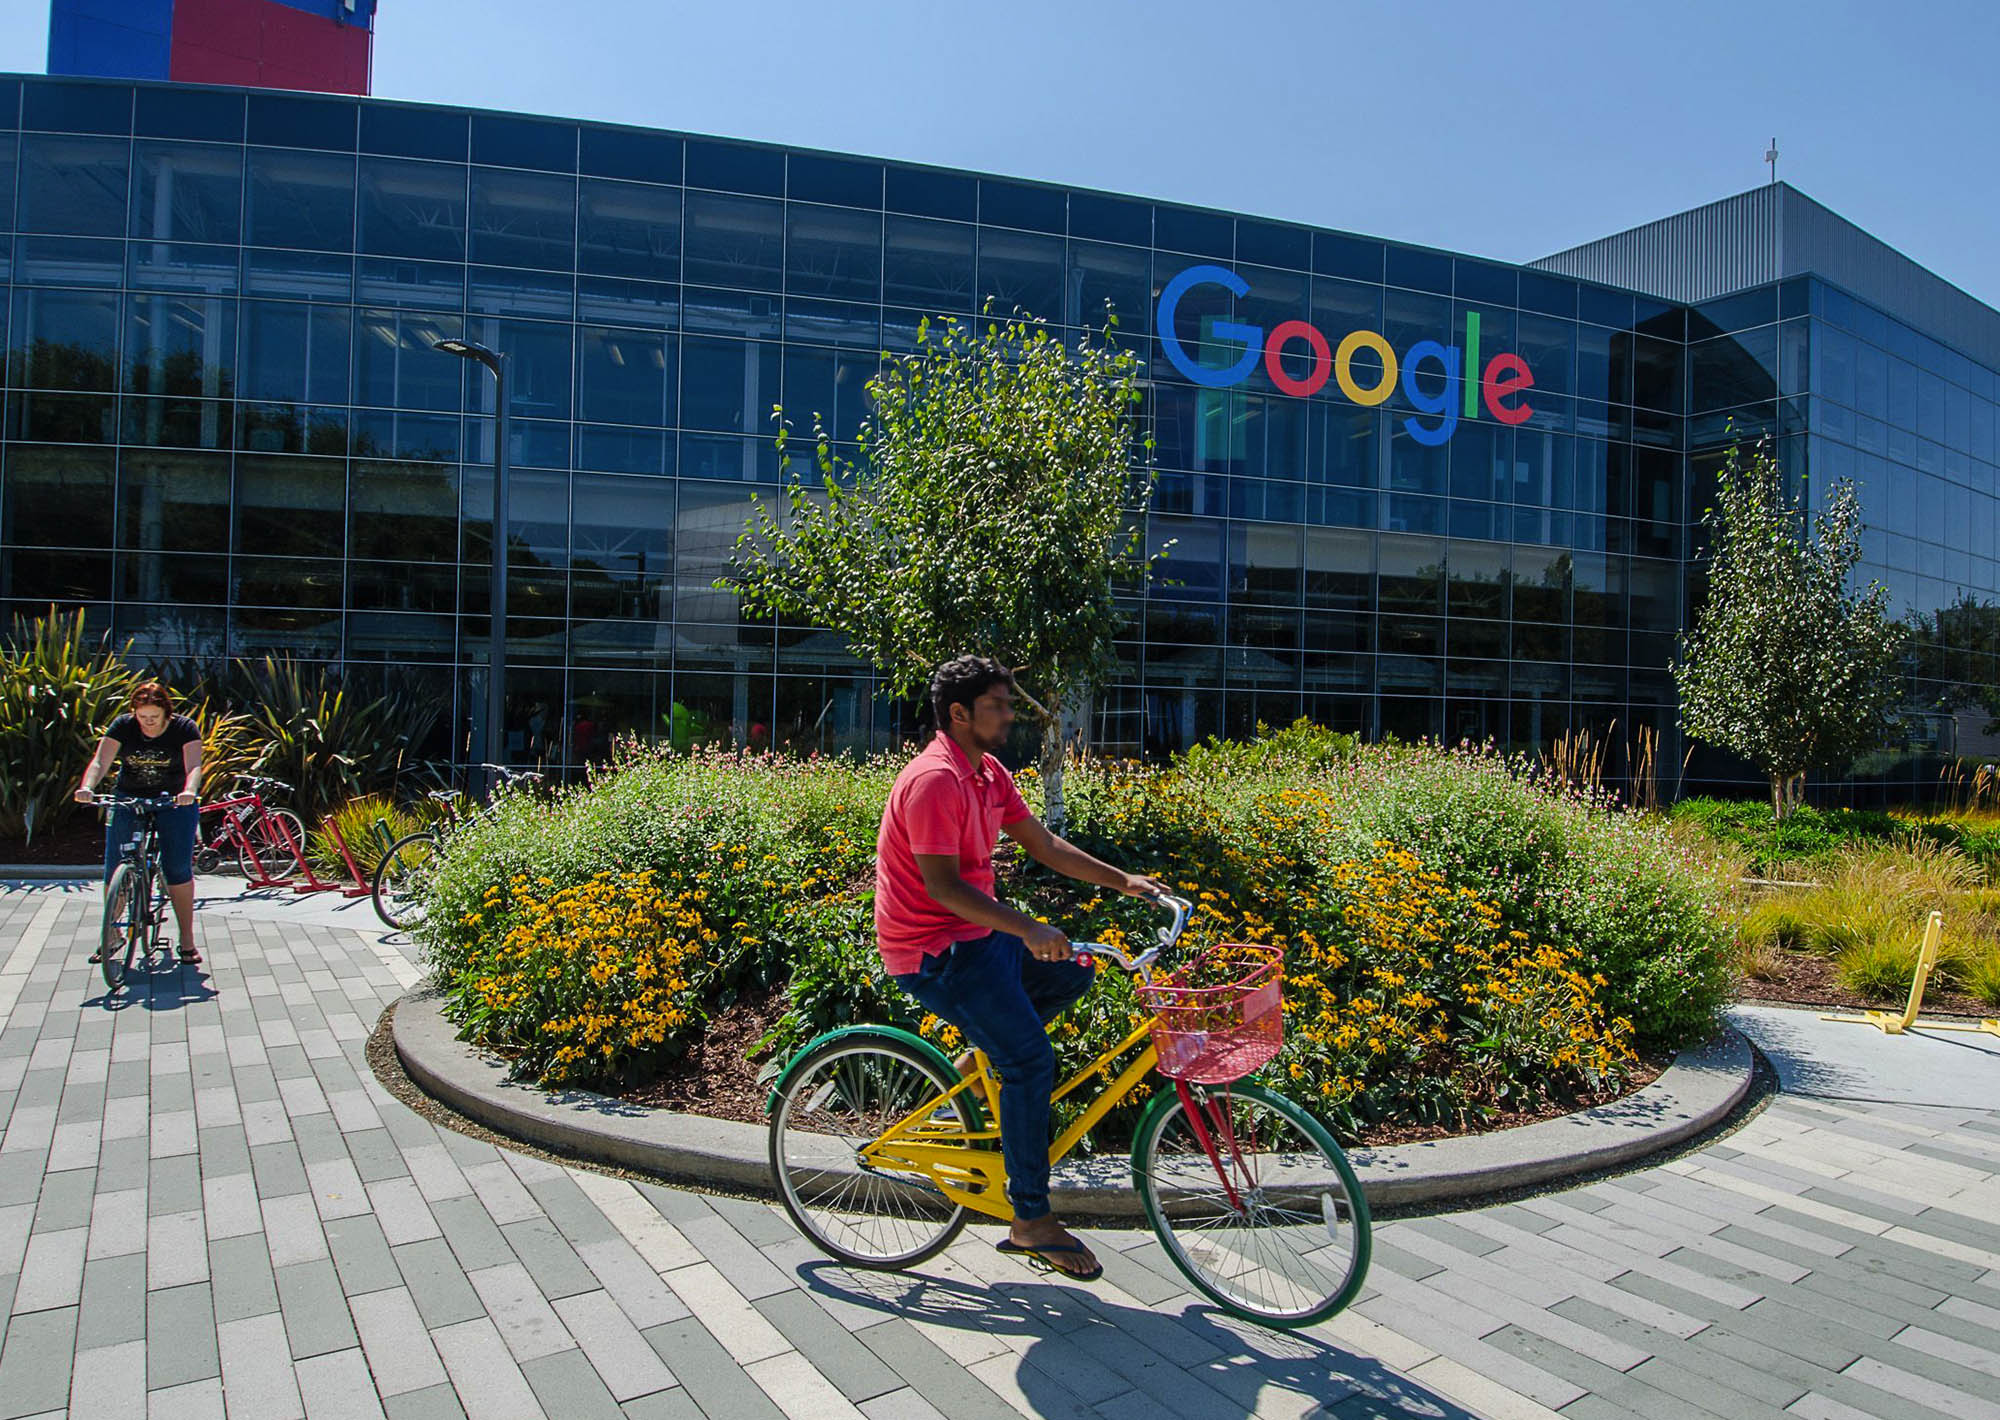 Googleplex in Mountain View (tripsavvy.com)